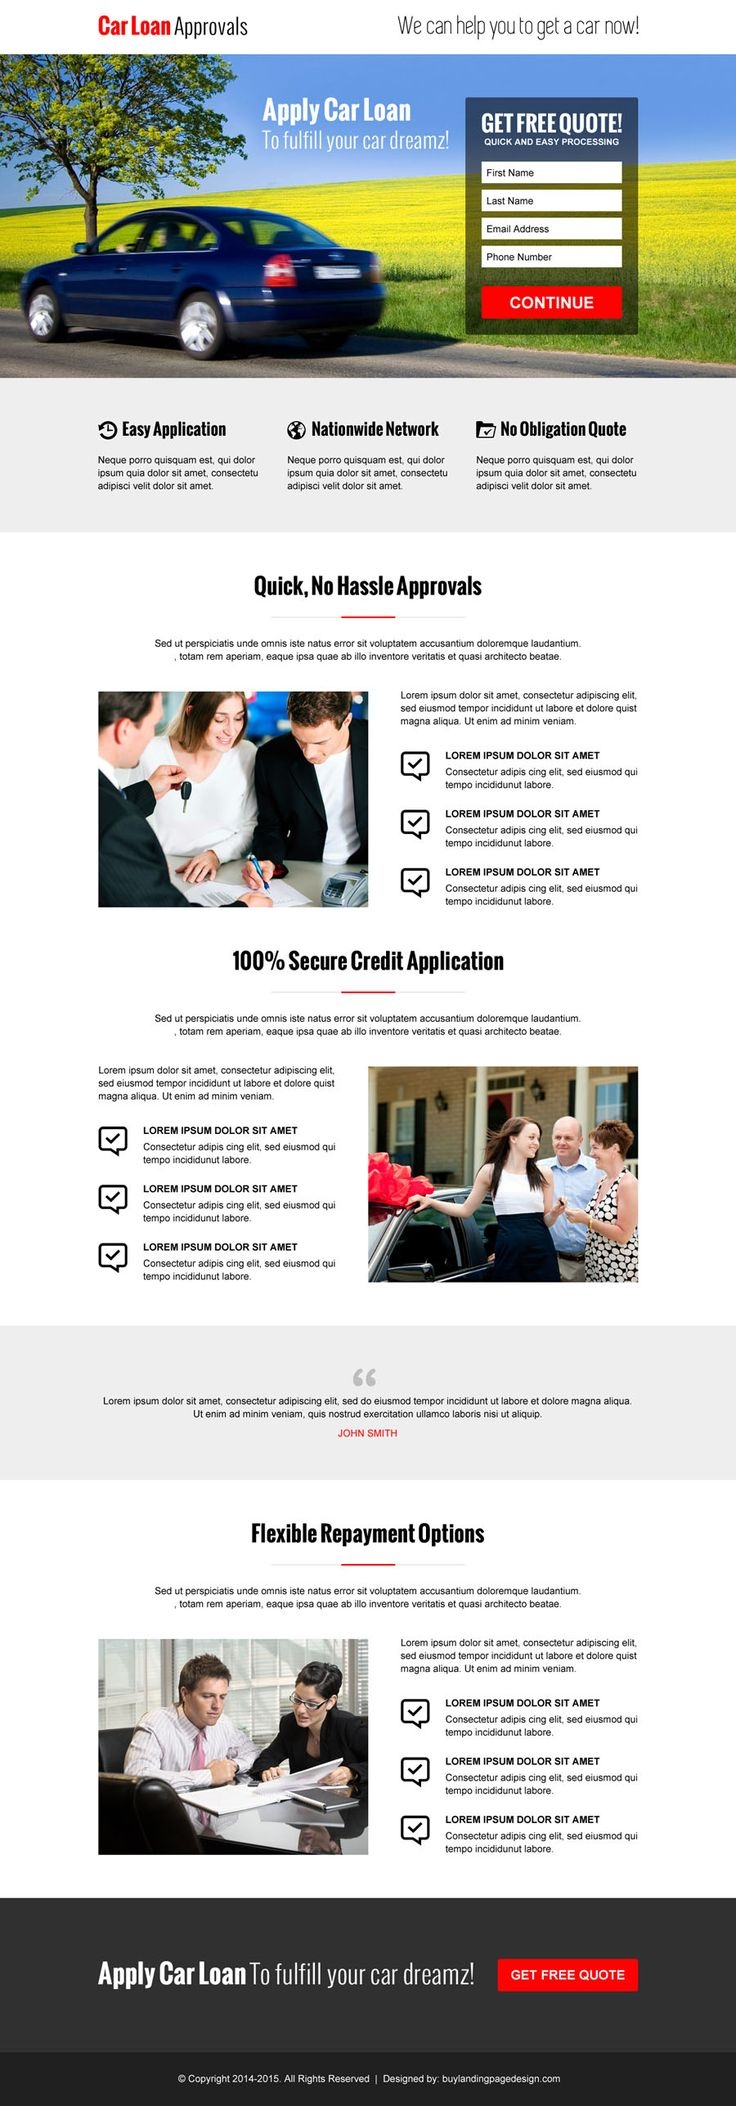 Download mobile friendly landing page design templates for business marketing from https://www.buylandingpagedesign.com/responsive-landing-page-design/